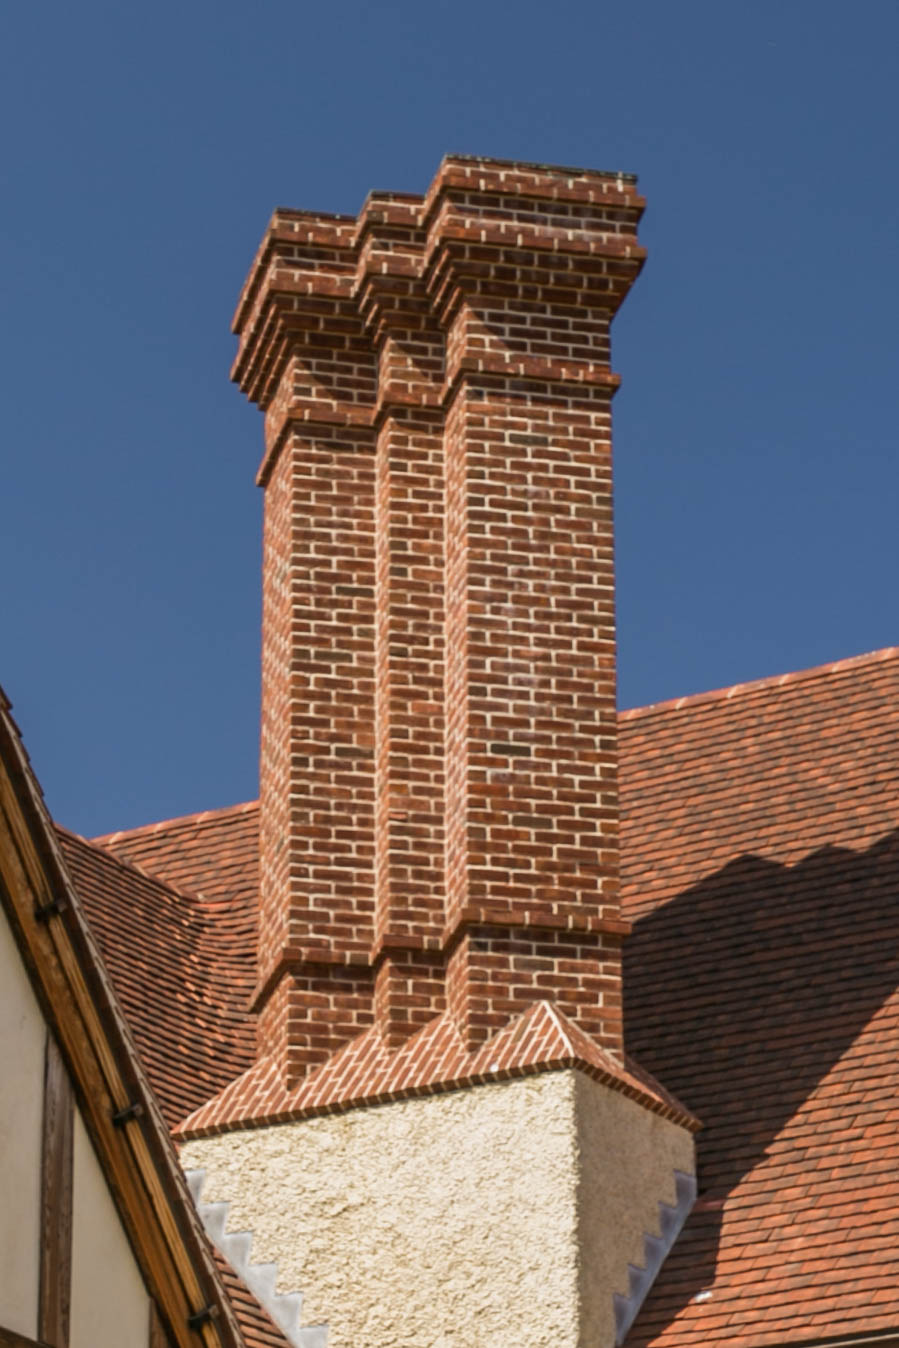 A reproduction of one of the   chimneys that Lutyens designed for Orchards in Surrey   in 1899